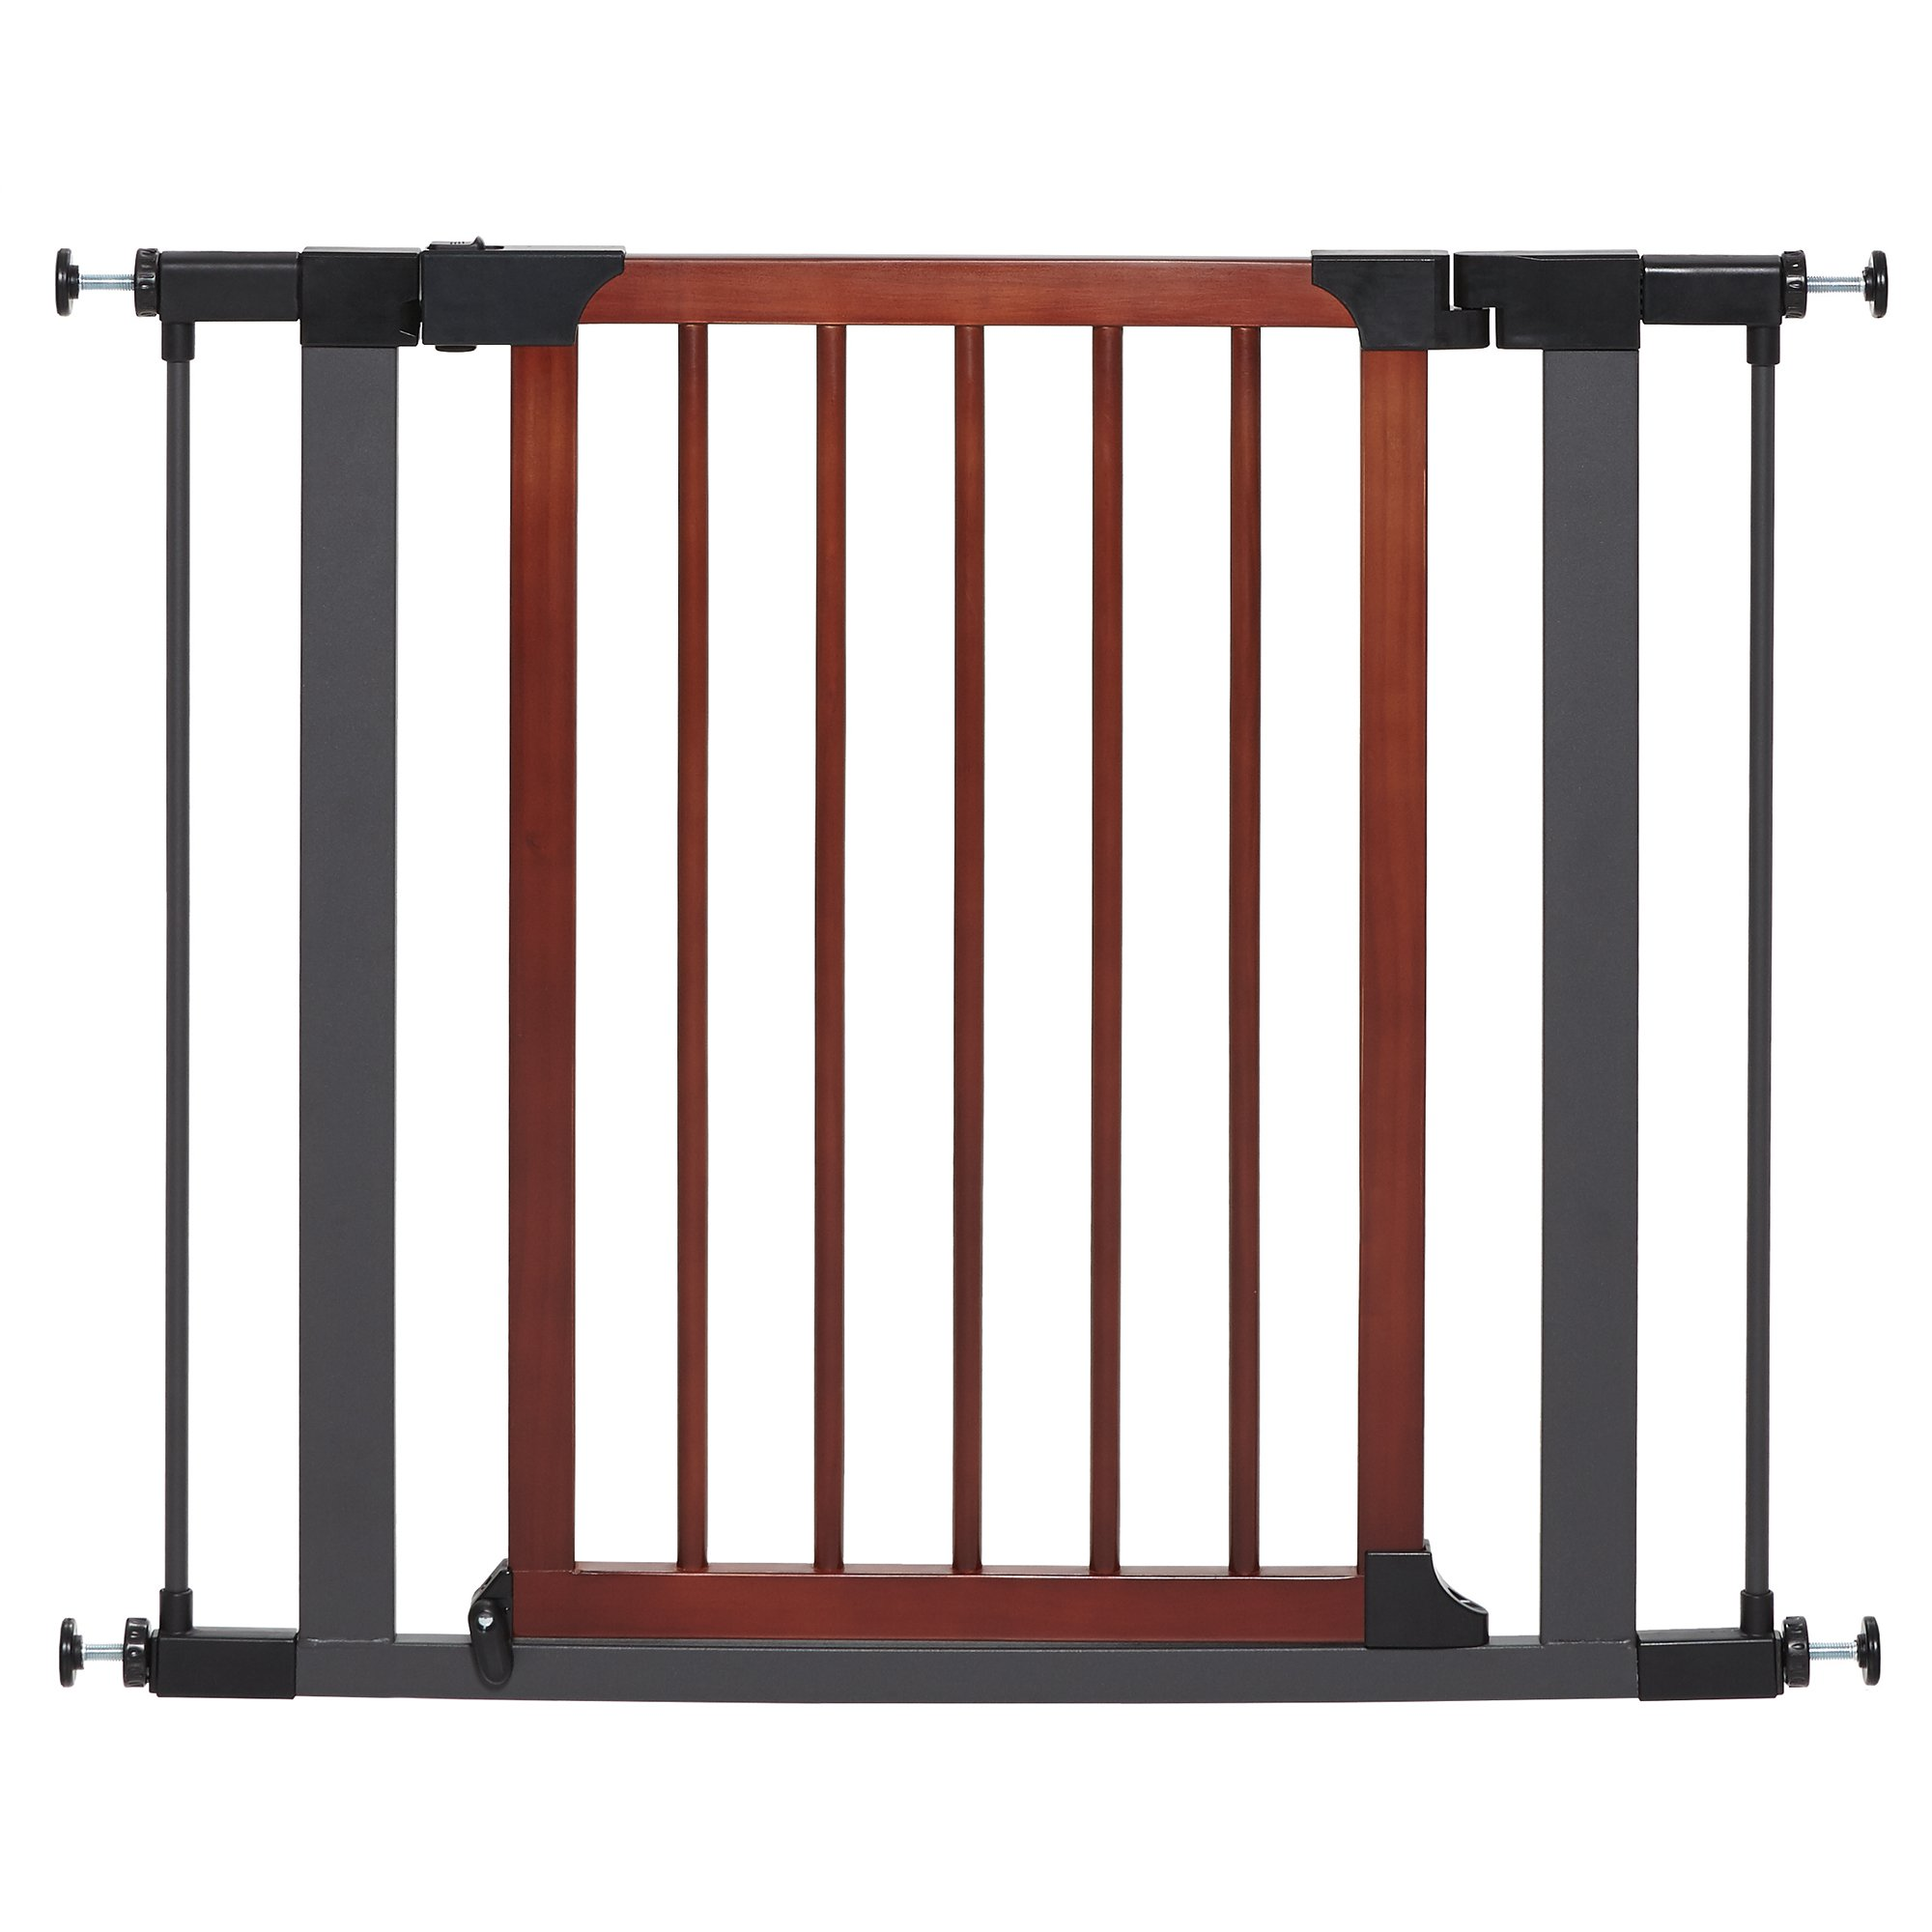 Midwest WalkThru Steel Pet Gate with Textured Graphite Frame  Decorative Wood Door 29H Large  Tall Gray